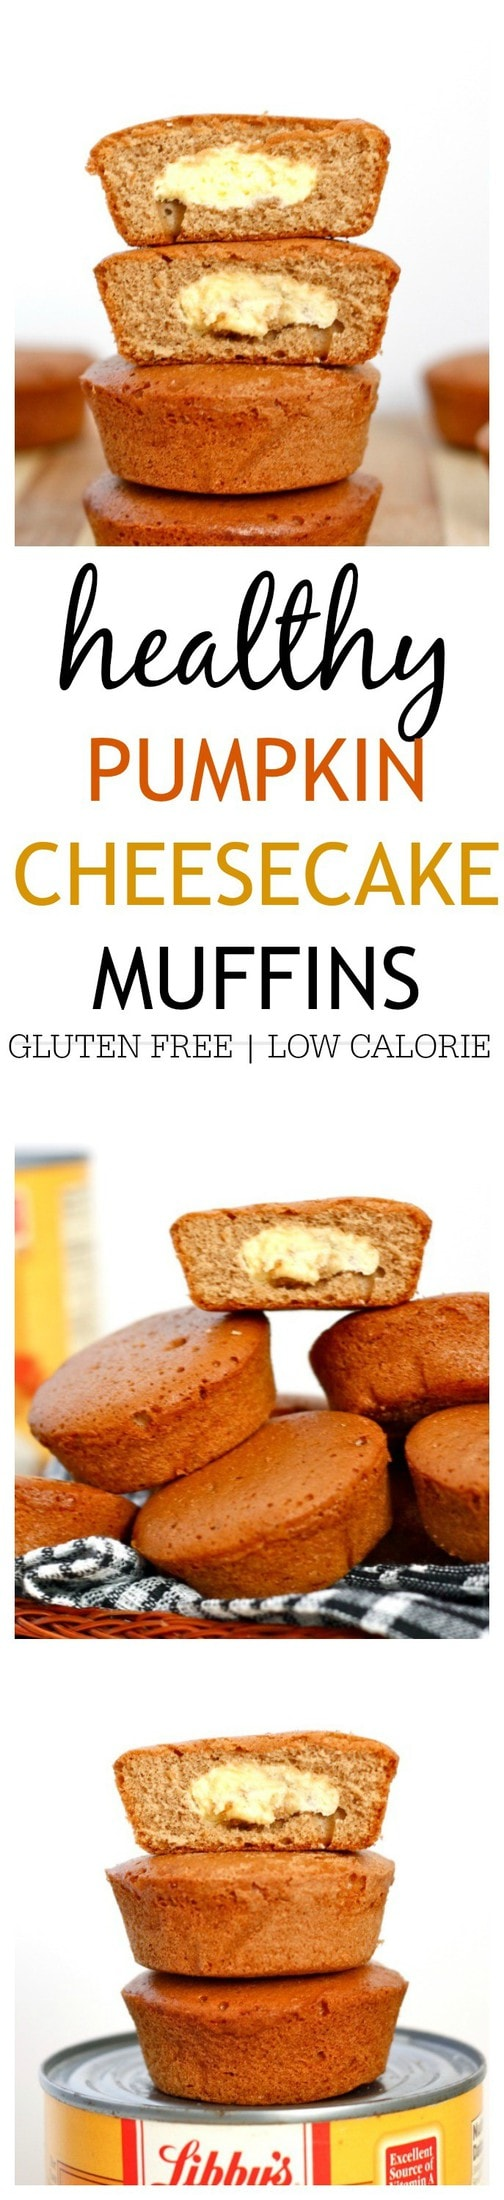 Healthy Pumpkin Cheesecake Muffins- Delicious, impressive yet super simple to whip up- These Healthy Pumpkin Cheesecake Muffins are NOT just reserved for Fall! Gluten free, high in protein and very low in sugar, these are the perfect snack between meals or dessert! @thebigmansworld - thebigmansworld.com